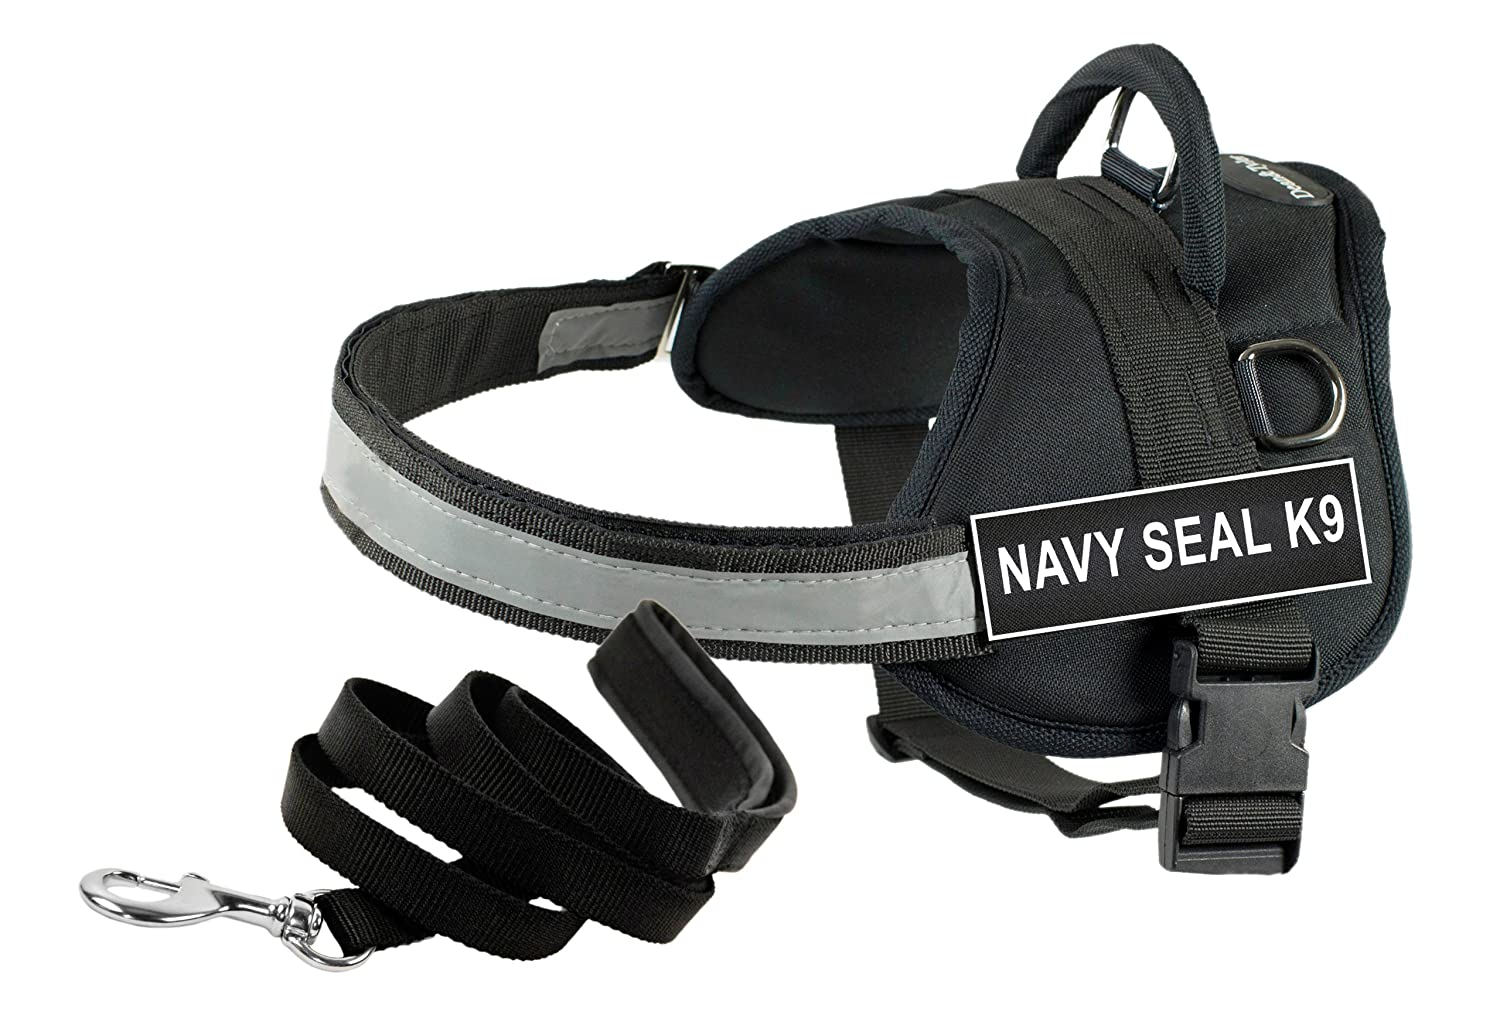 Dean & Tyler's DT Works NAVY SEAL K9 Harness, Small, with 6 ft Padded Puppy Leash.